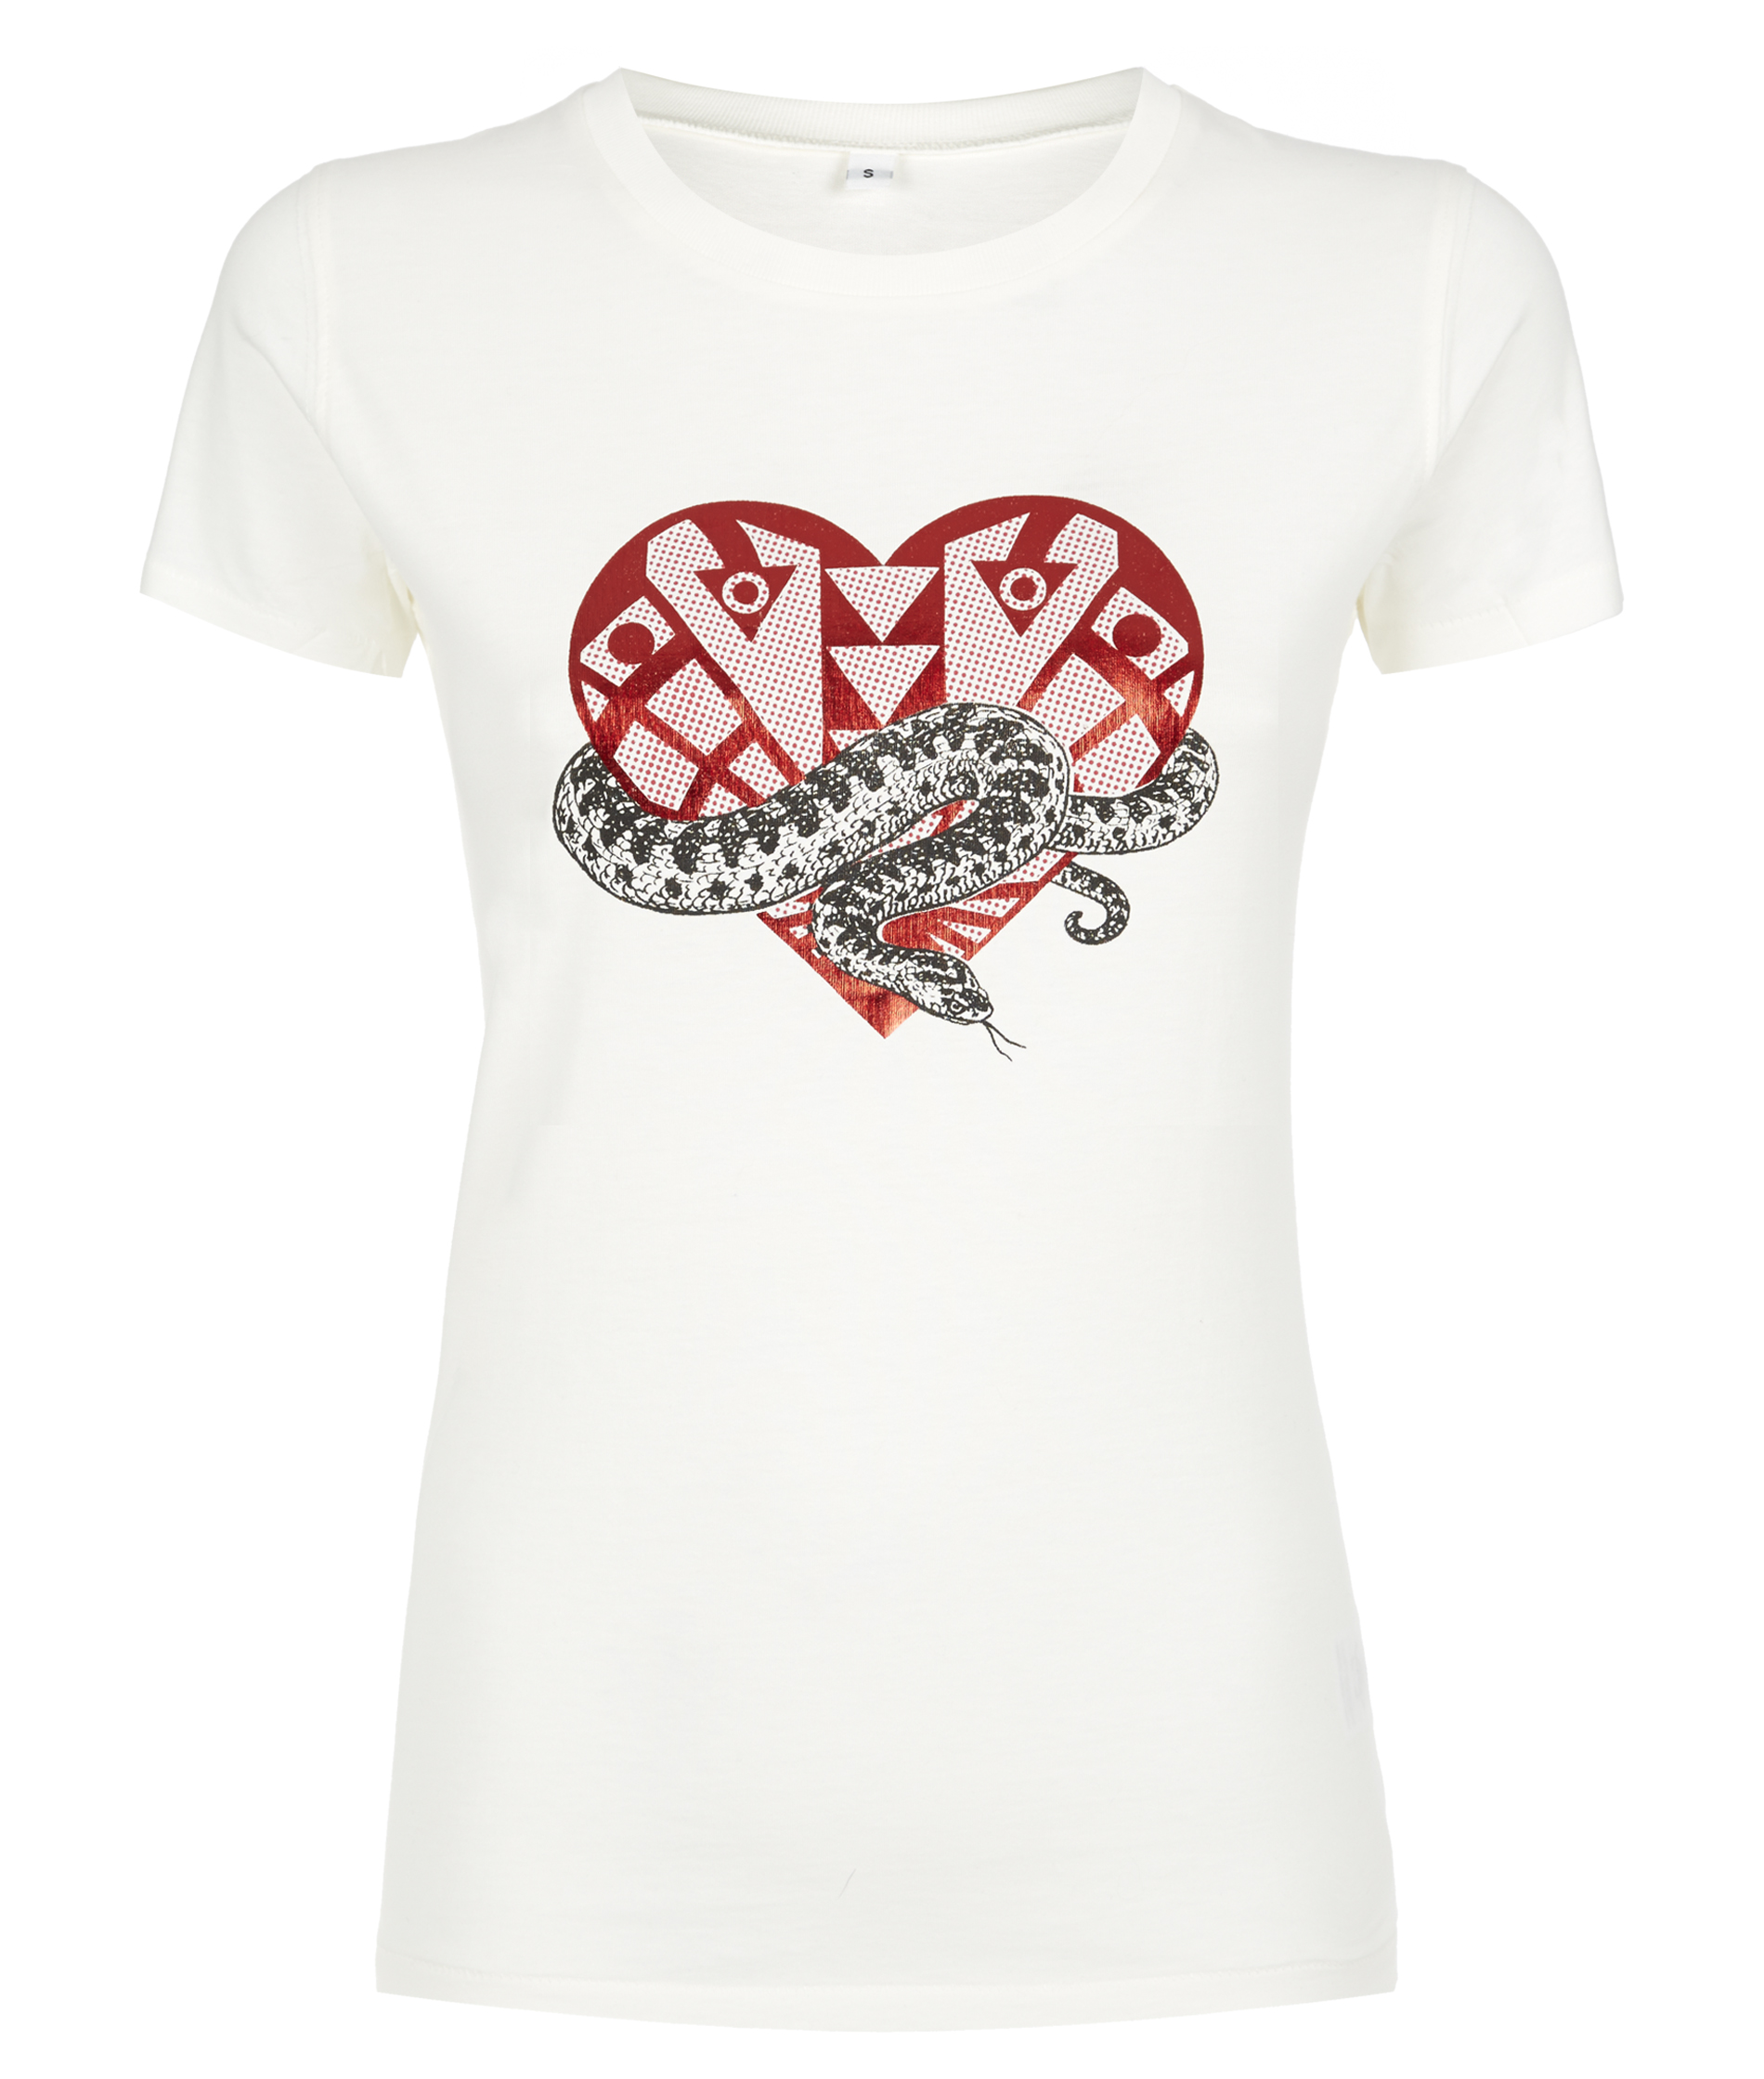 Holly Fulton Cream T-Shirt With Screen Printed Red Foil Heart And Black Snake